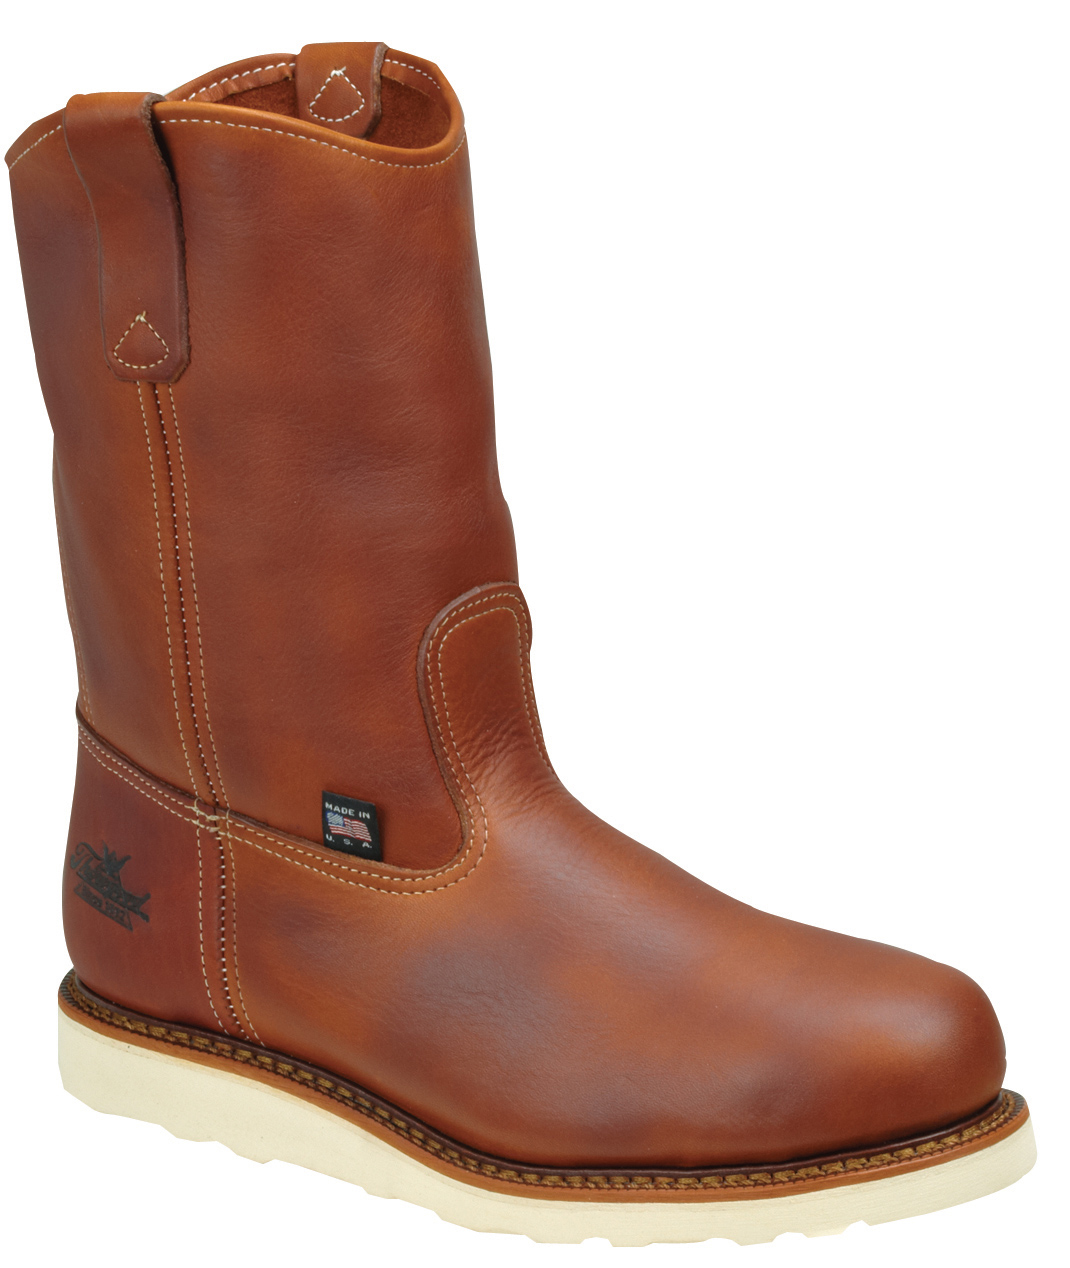 Thorogood Men's Thorogood Work Boots Wellington Non-Safety (E,W) Brown 814-4208 at Sears.com